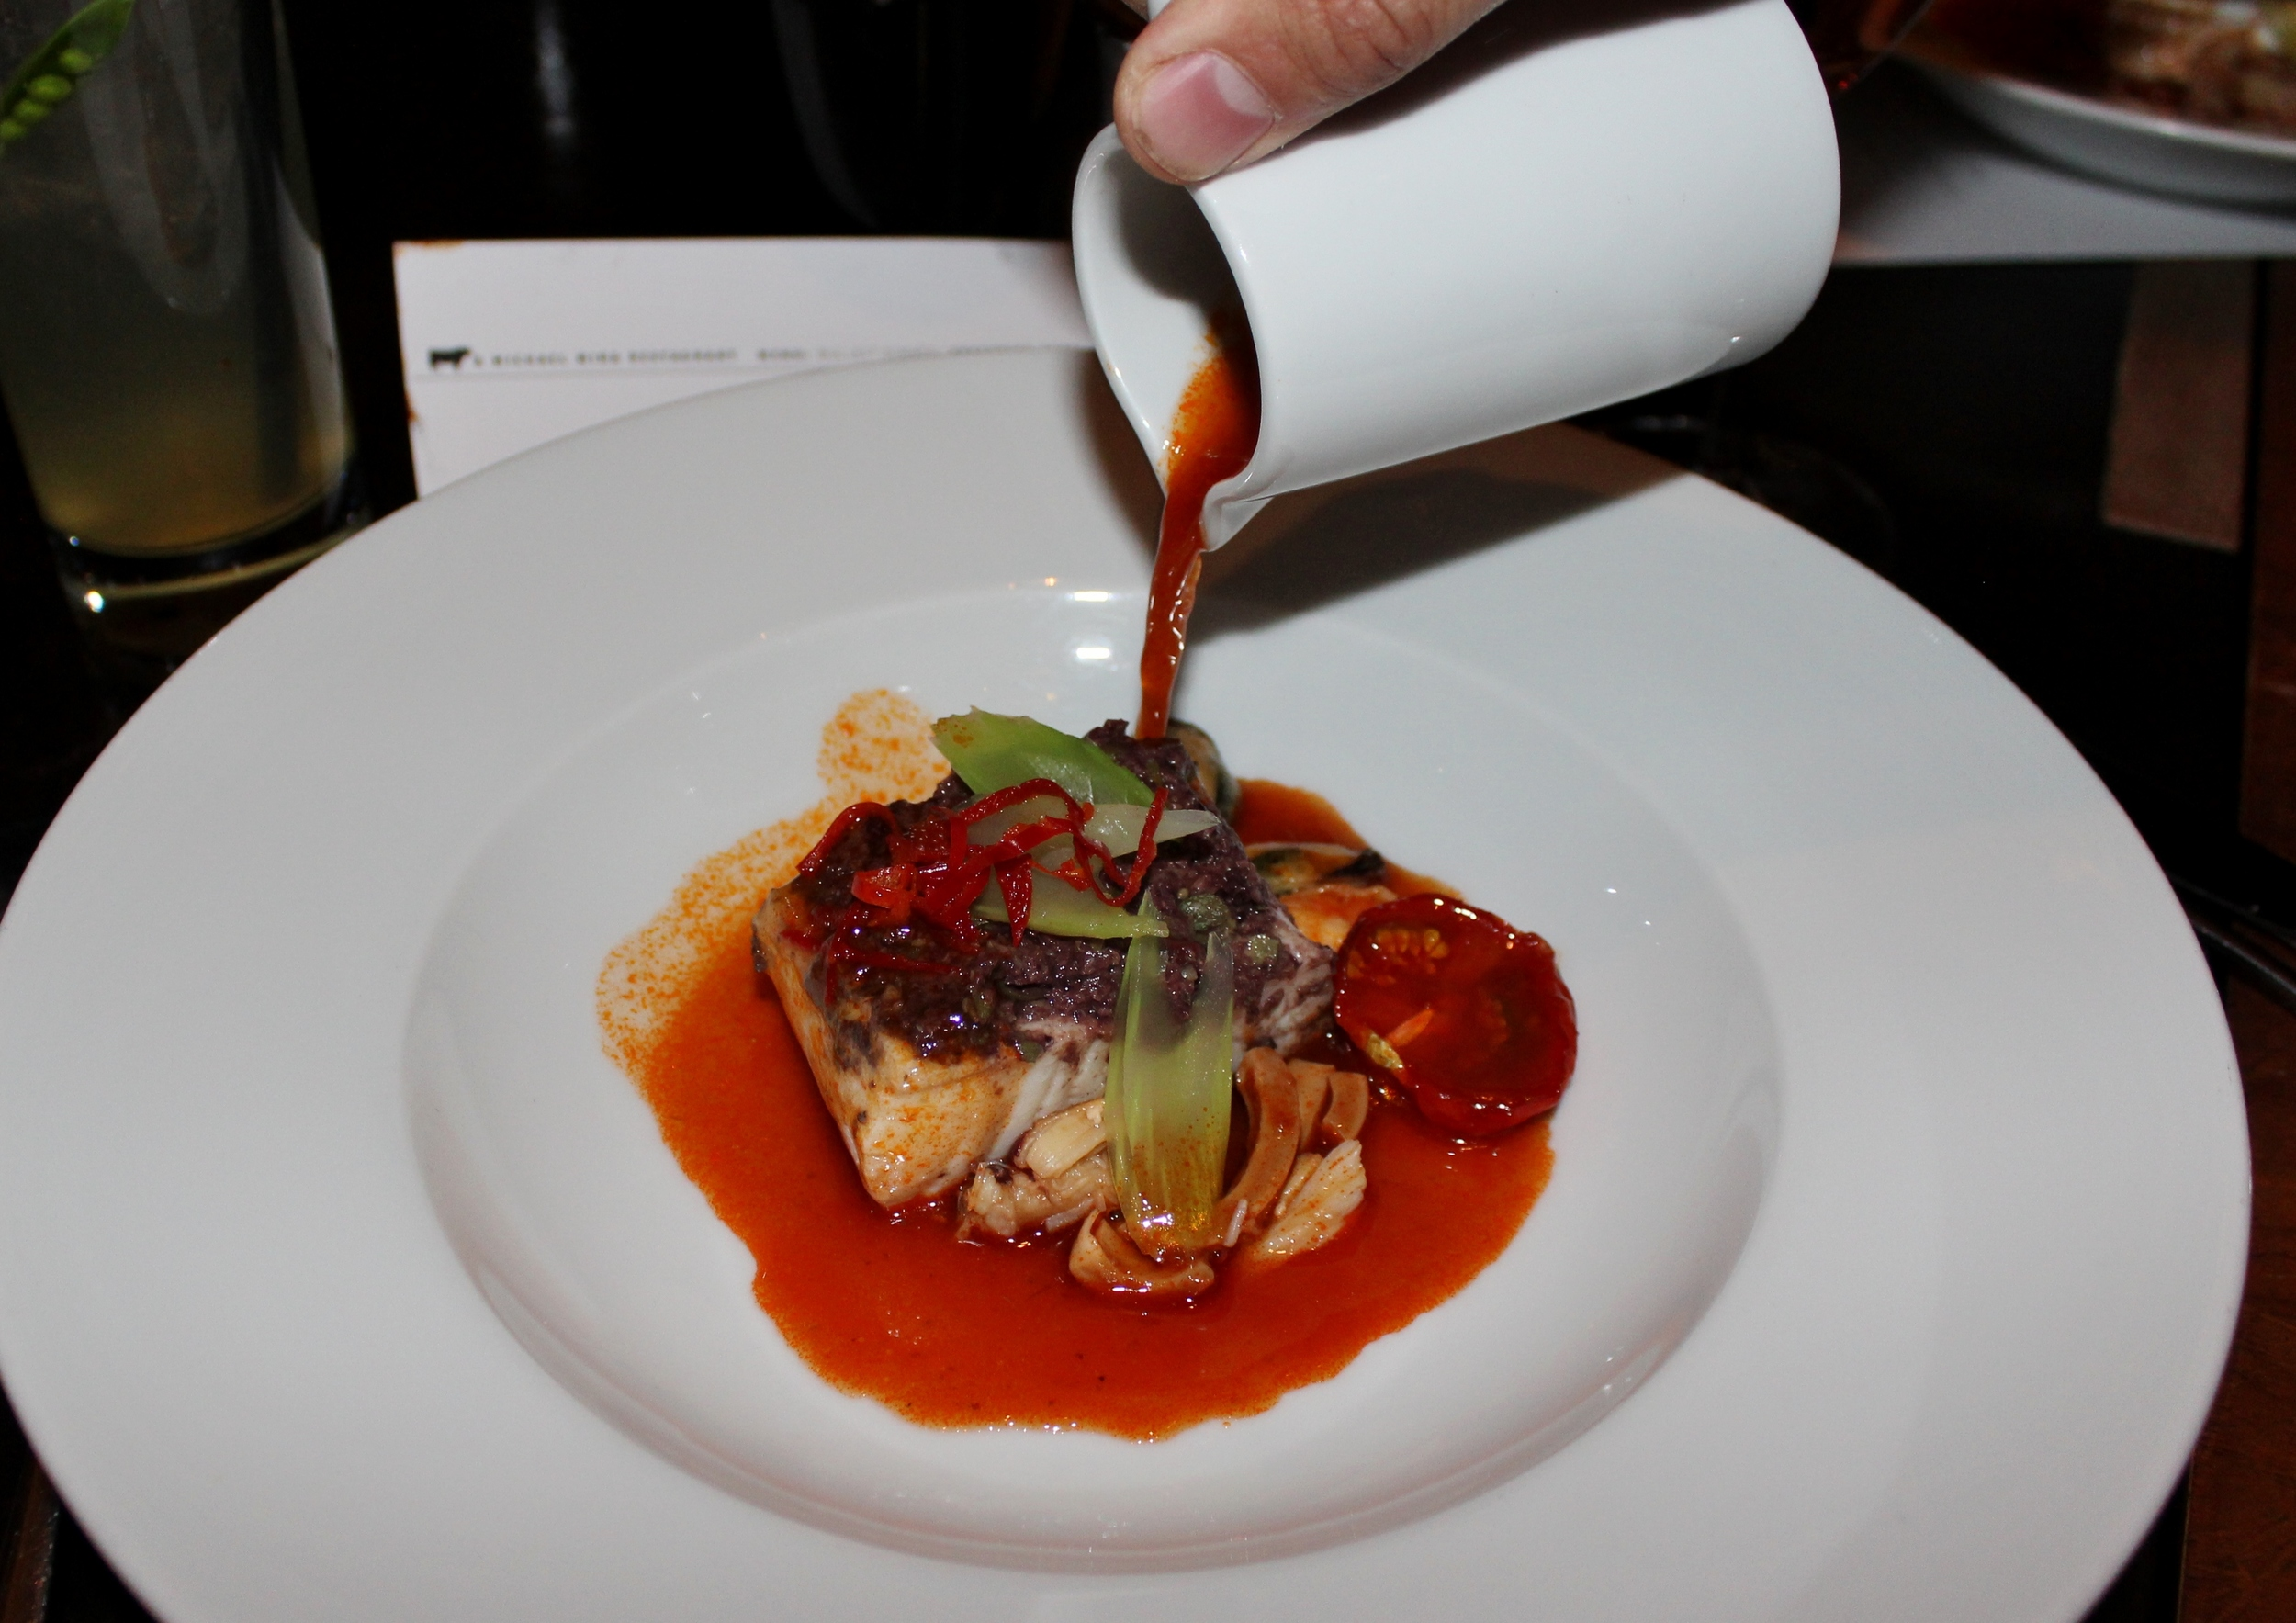 Cioppino with Dungeness crab, halibut, cuttlefish, and tapenade